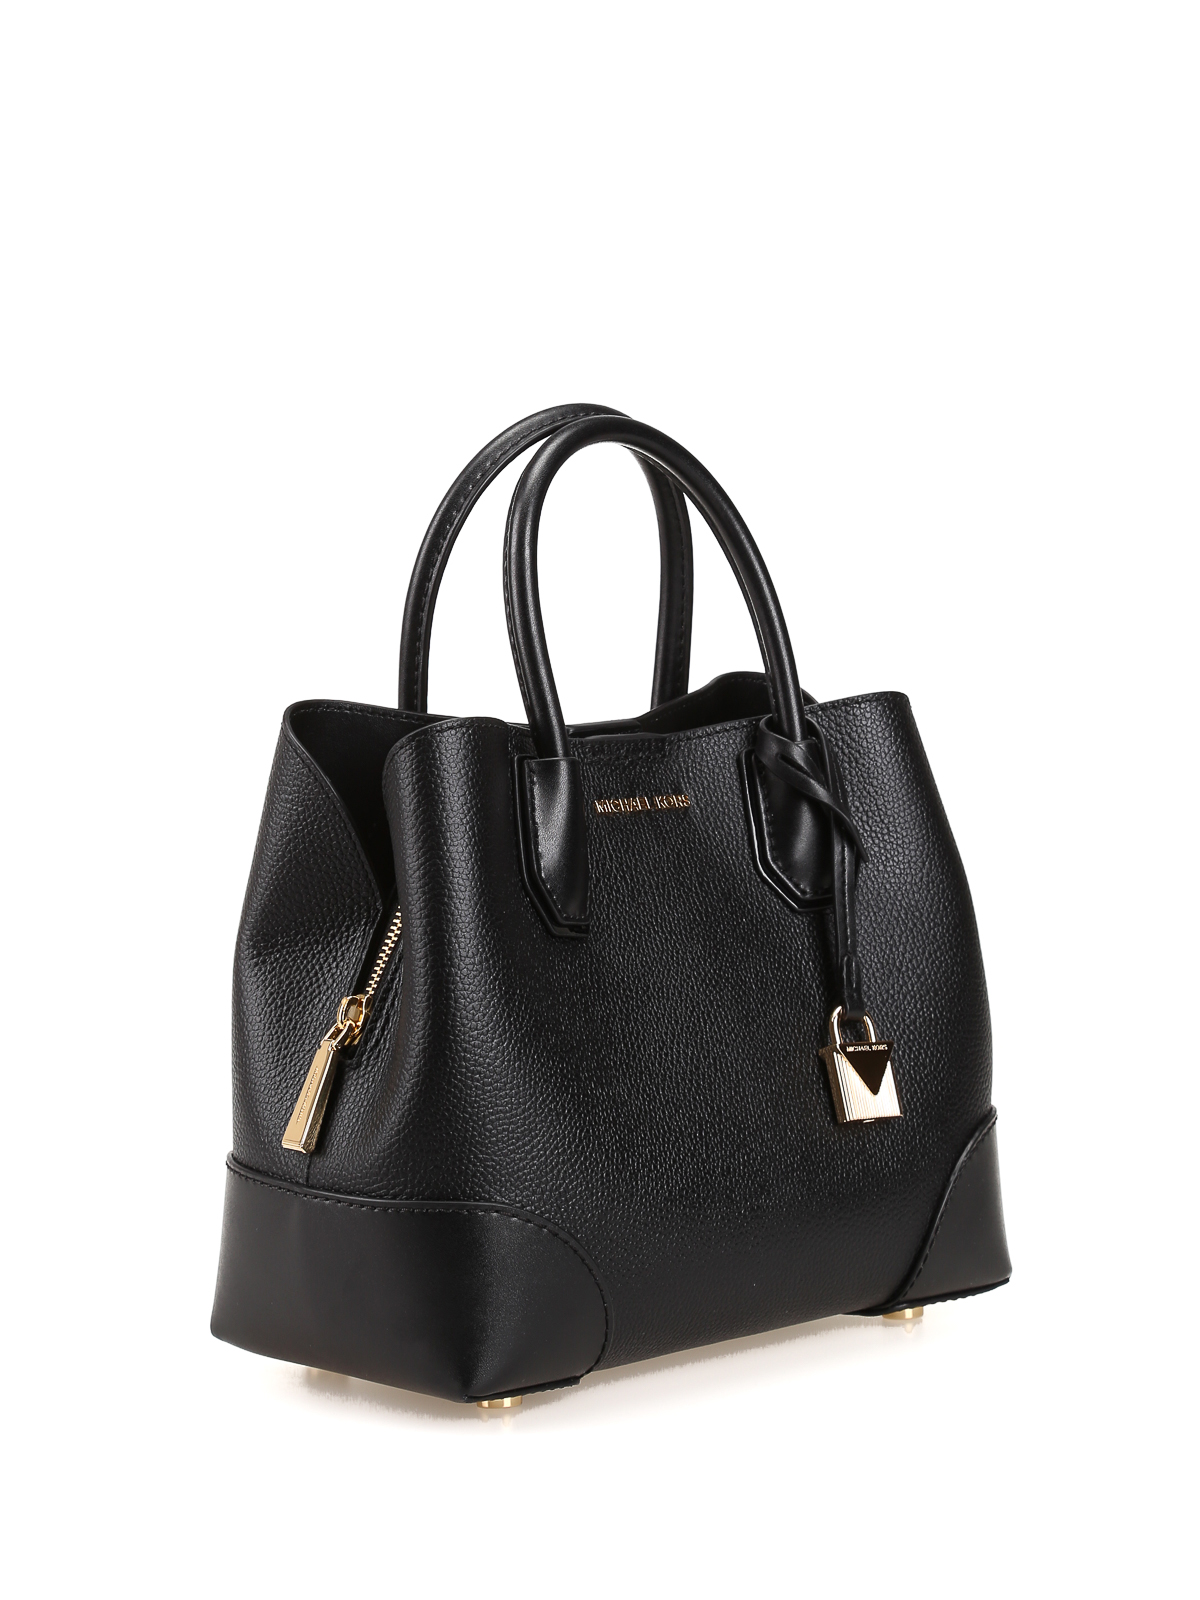 michael kors mercer gallery black small tote totes. Black Bedroom Furniture Sets. Home Design Ideas